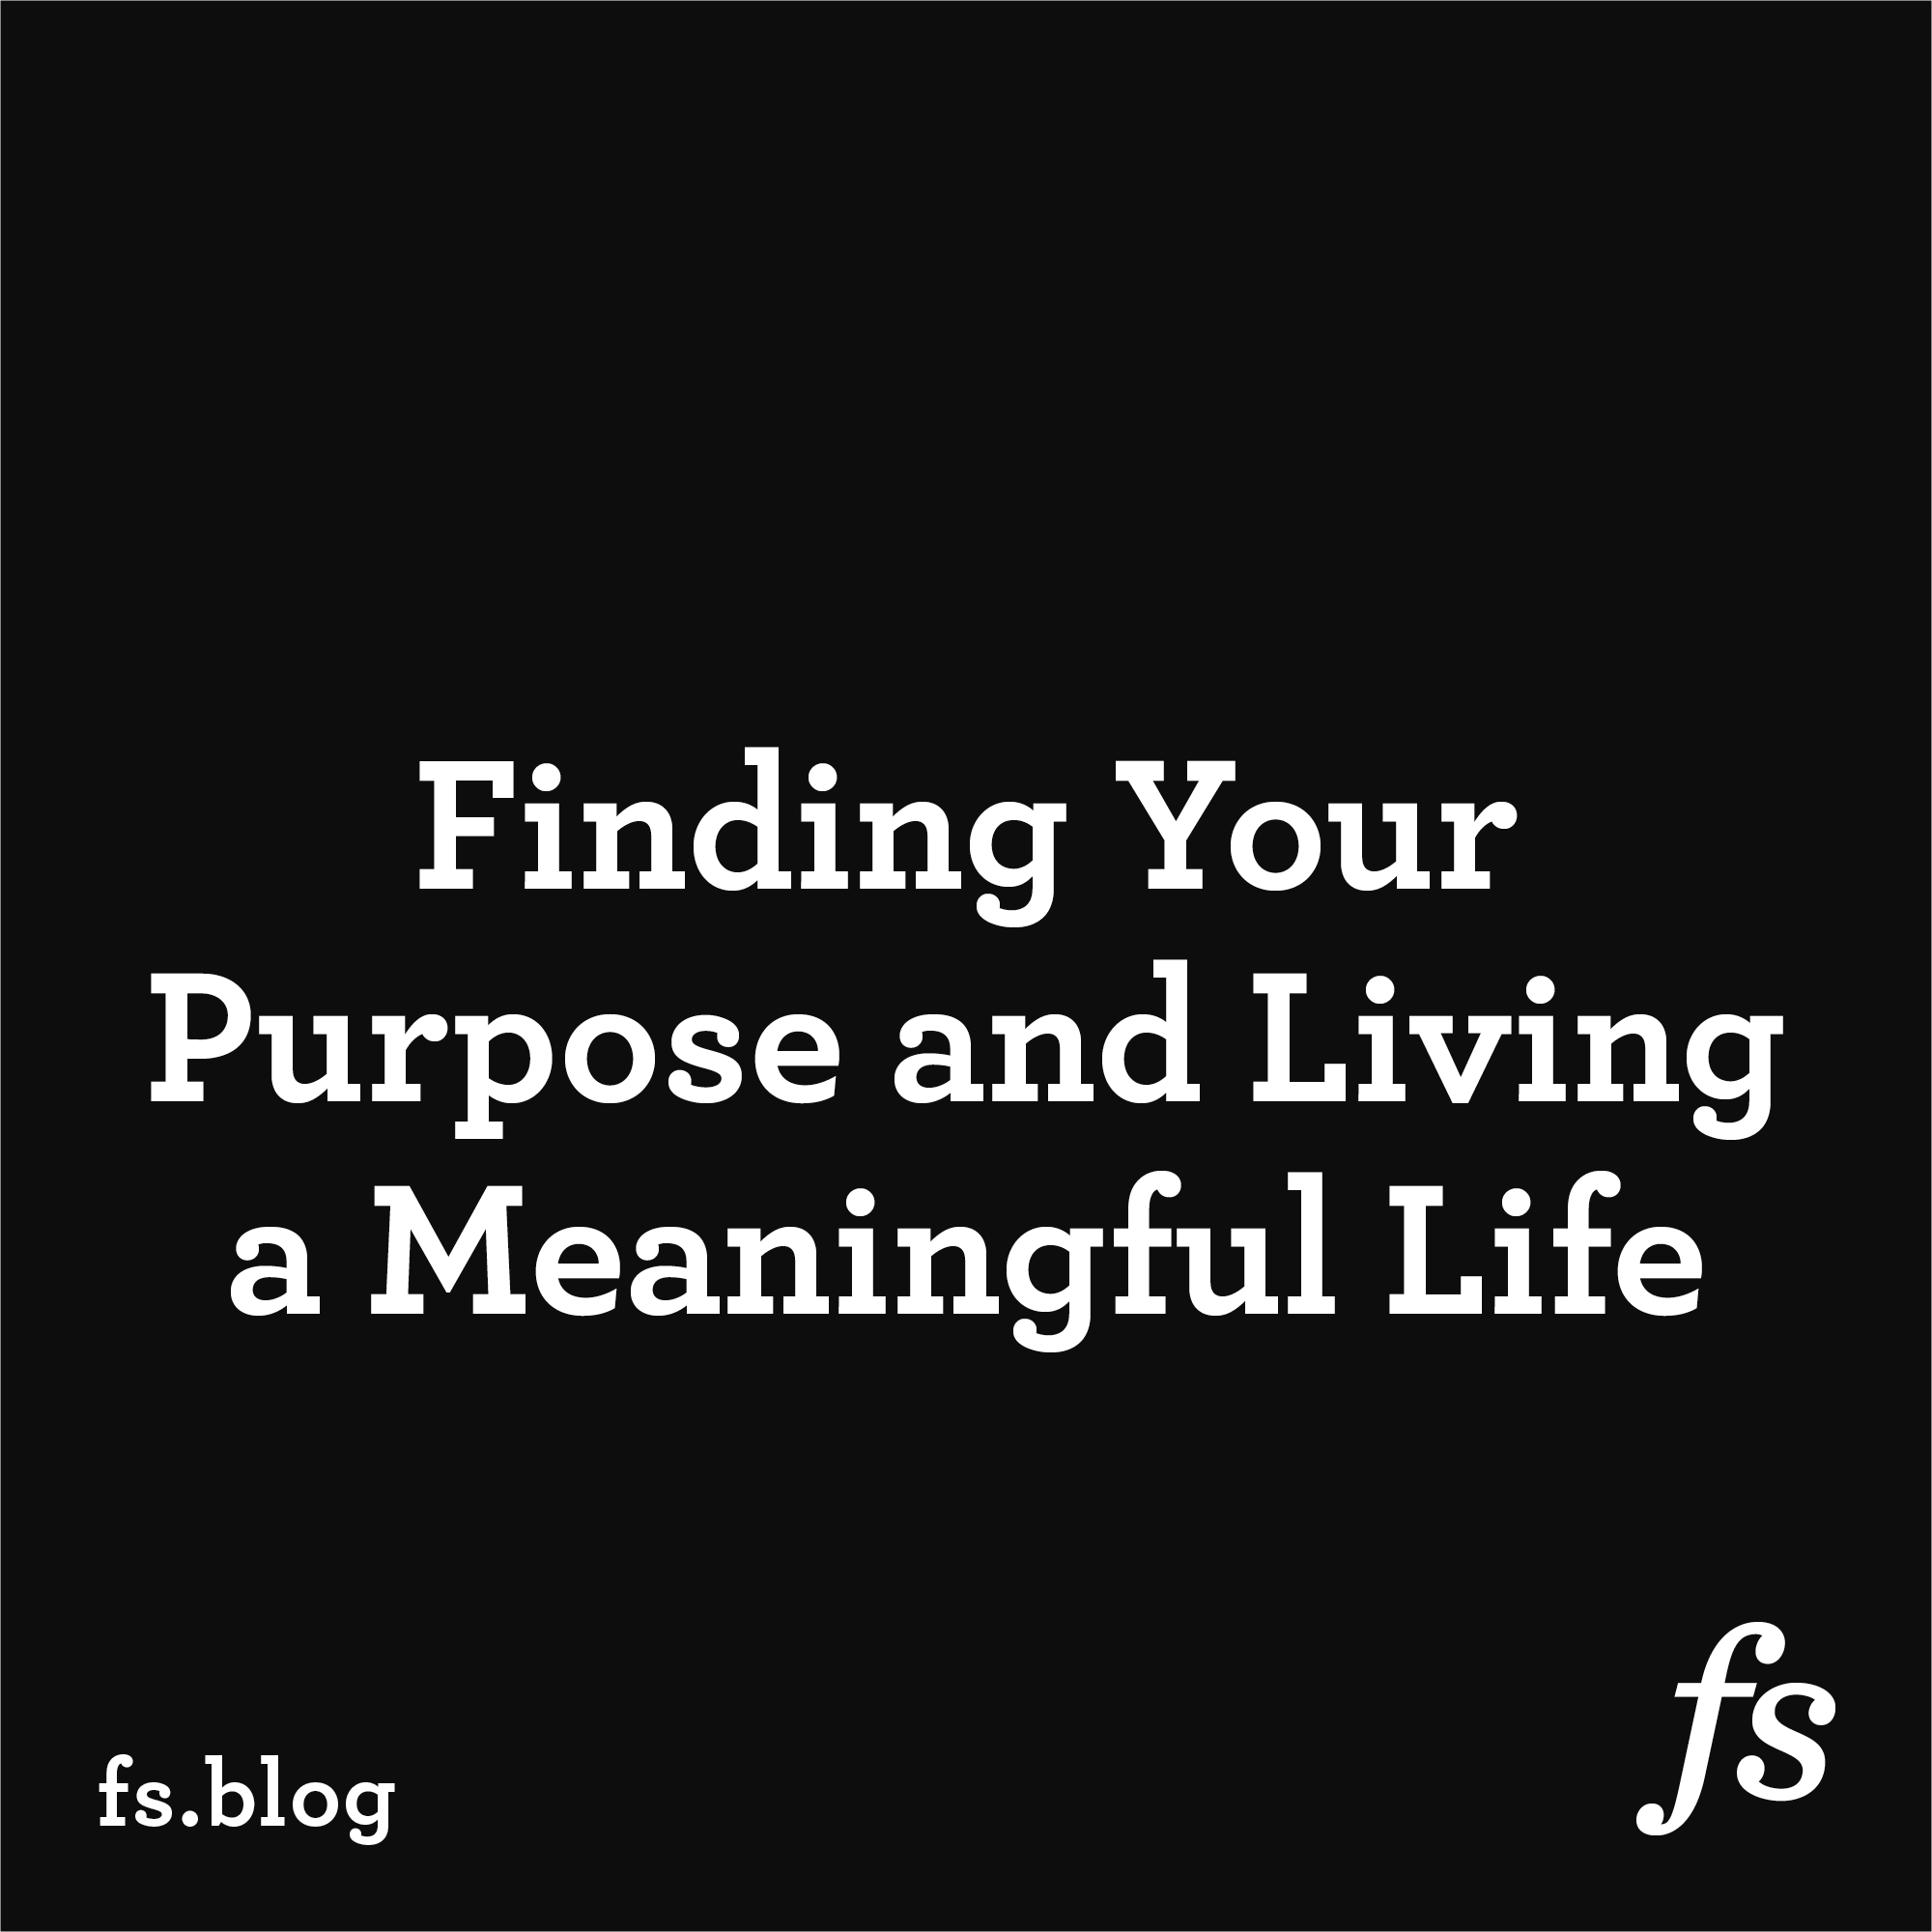 Hunter S. Thompson's Letter On Finding Your Purpose And